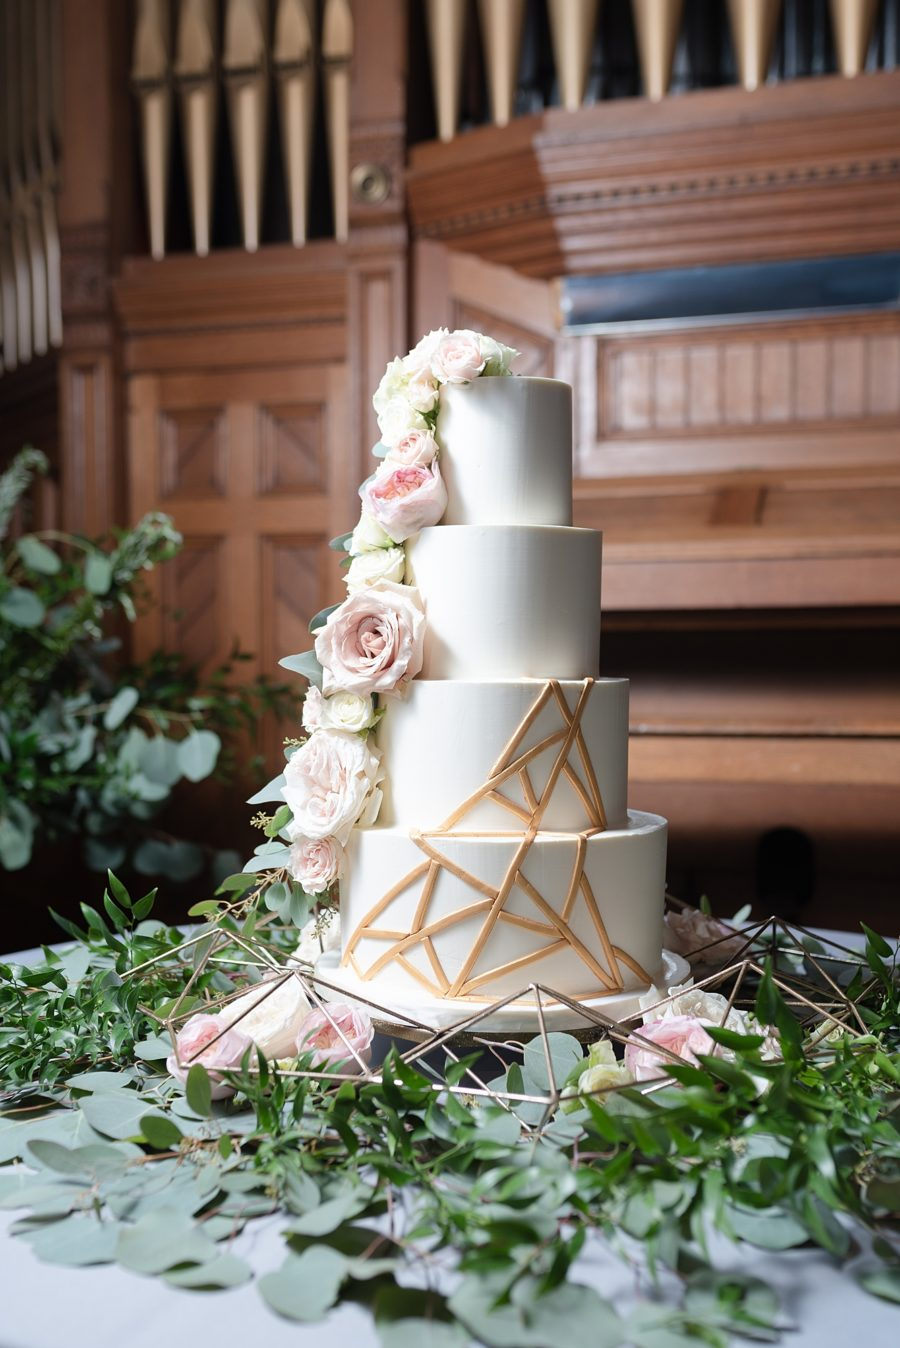 Gold and white floral wedding cake: Modern and Southern Wedding at the Clementine featured on Nashville Bride Guide